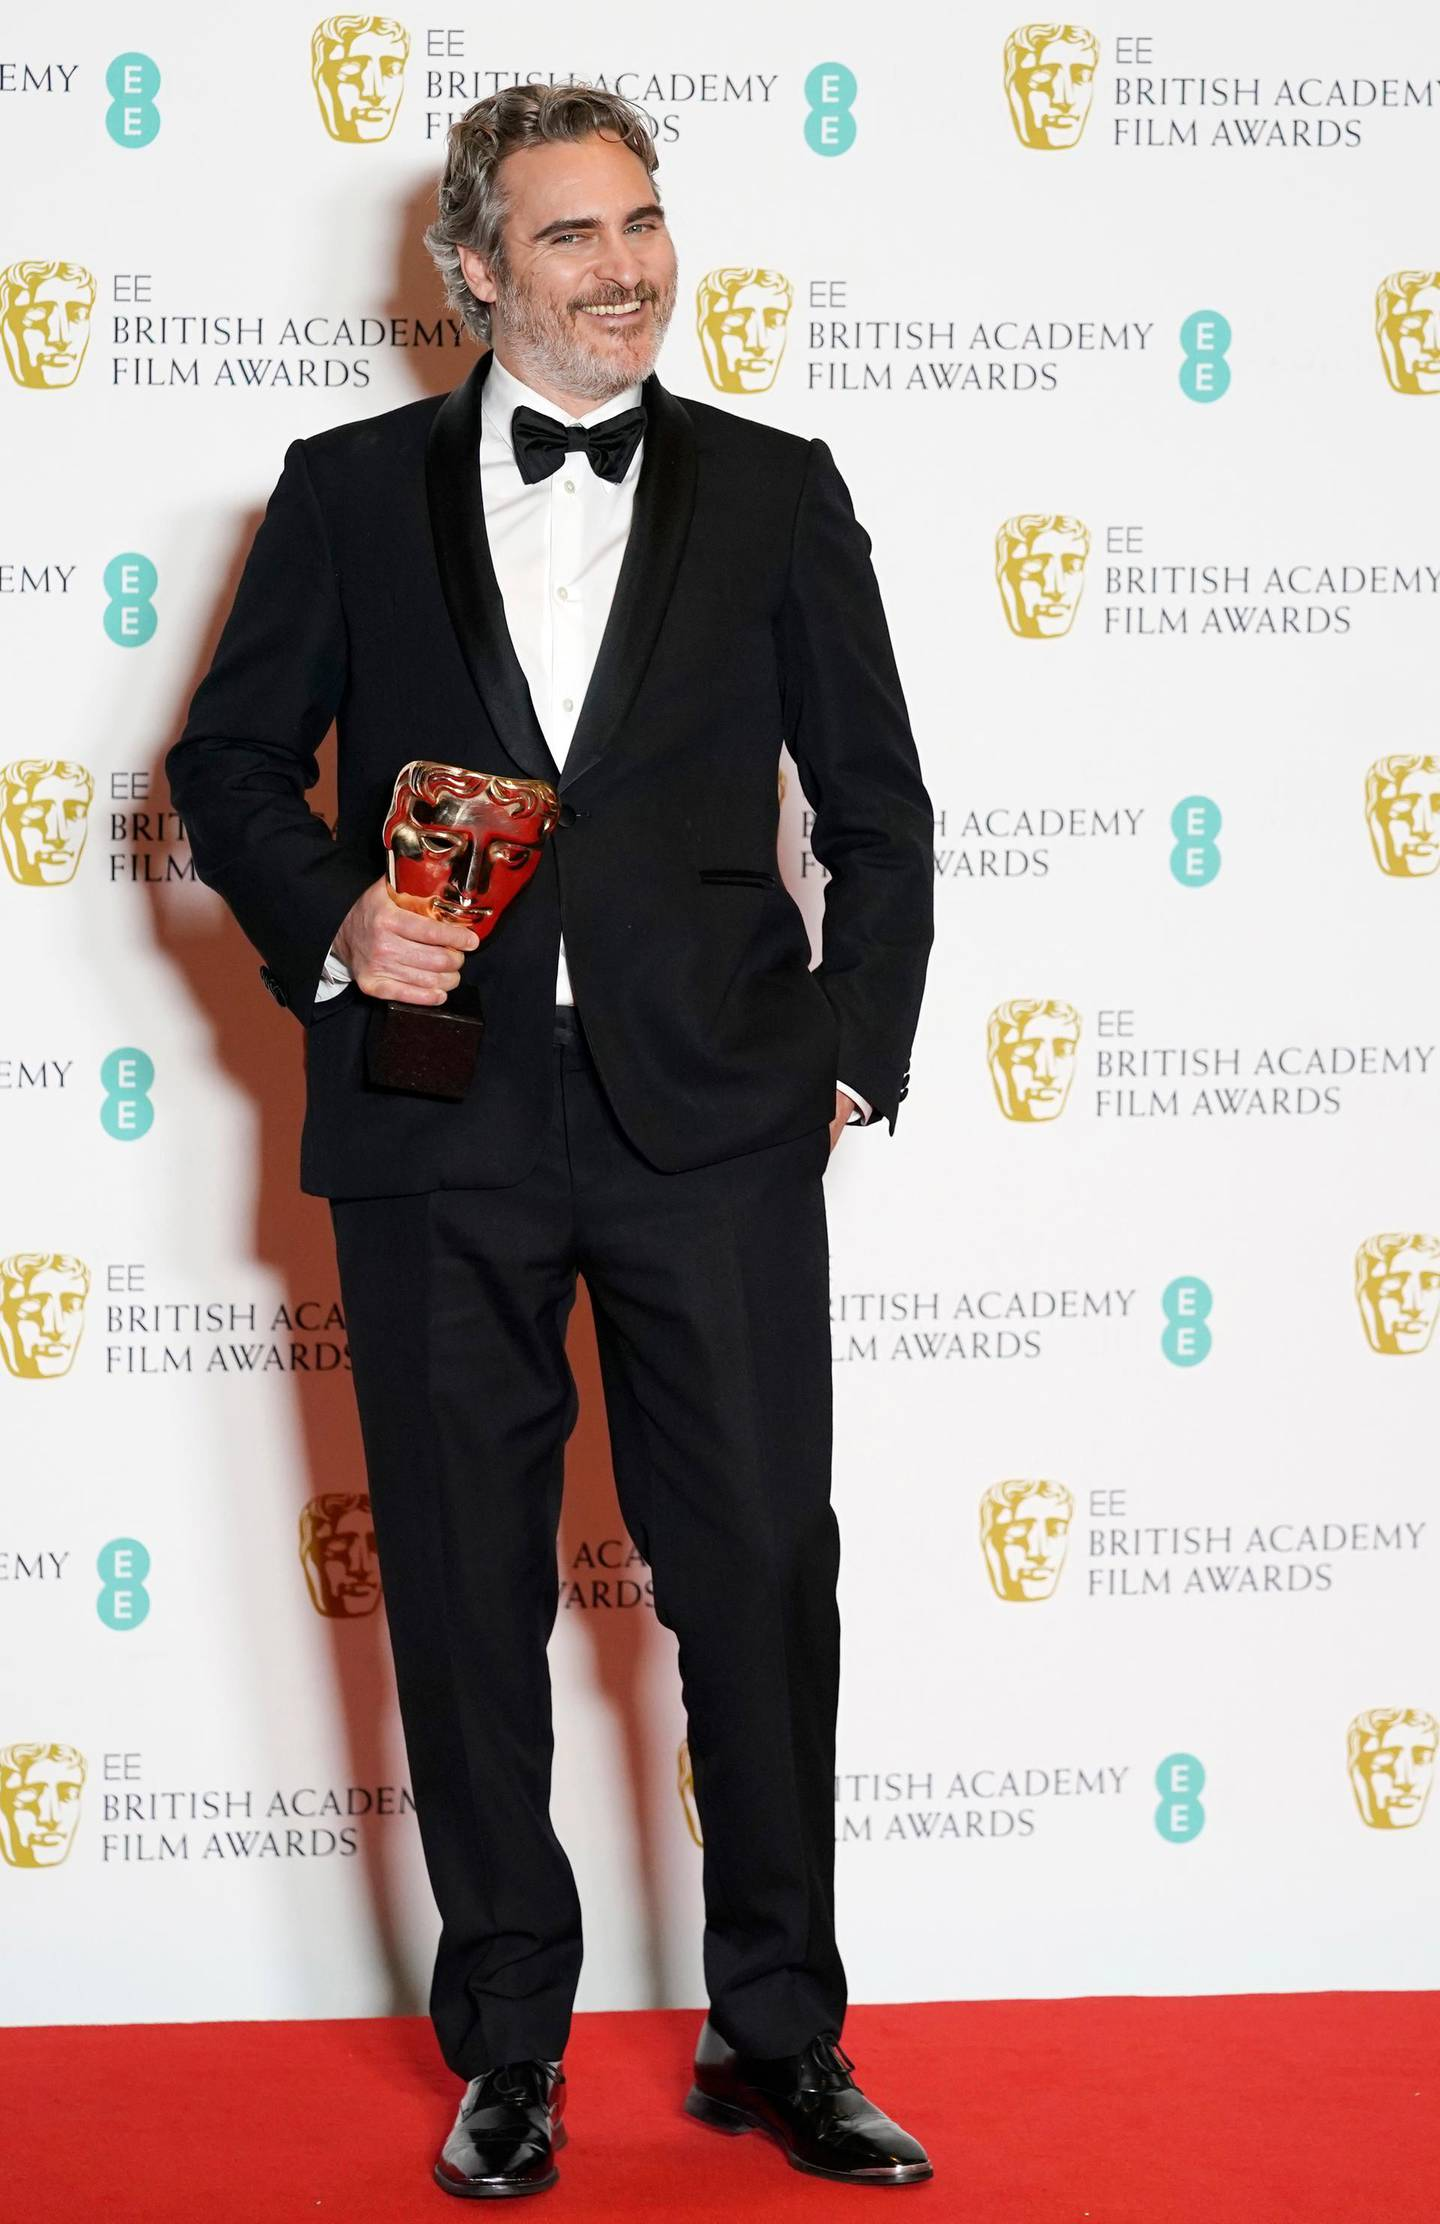 epa08189150 Joaquin Phoenix, winner of Leading Actor for the film 'Joker' poses in the press room during the 73rd annual British Academy Film Award at the Royal Albert Hall in London, Britain, 02 February 2020. The ceremony is hosted by the British Academy of Film and Television Arts (BAFTA).  EPA/WILL OLIVER *** Local Caption *** 54975578